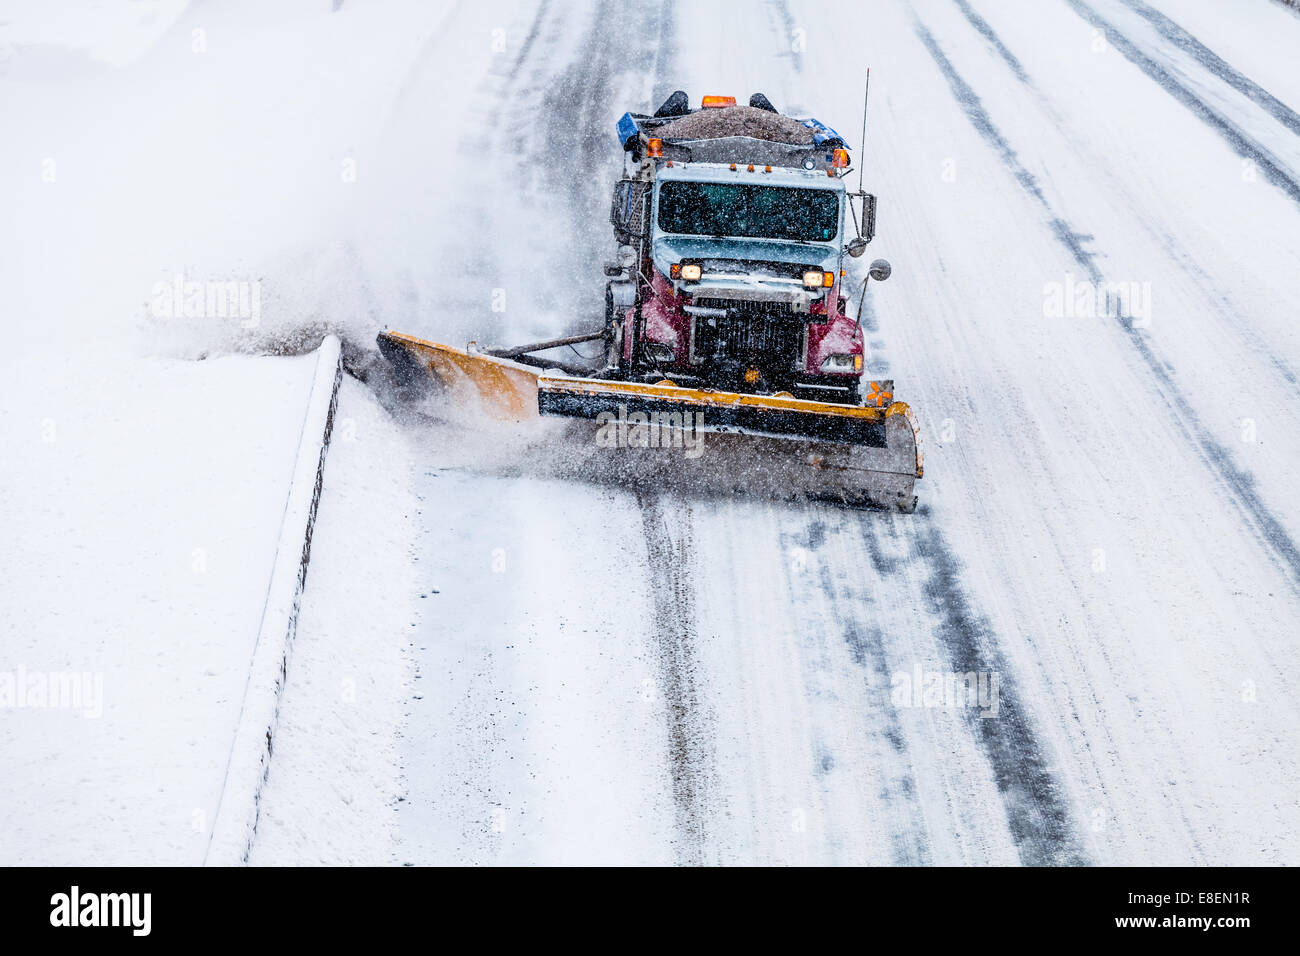 Snowplow Truck Removing the Snow from the Highway during a Cold Snowstorm Winter Day - Stock Image